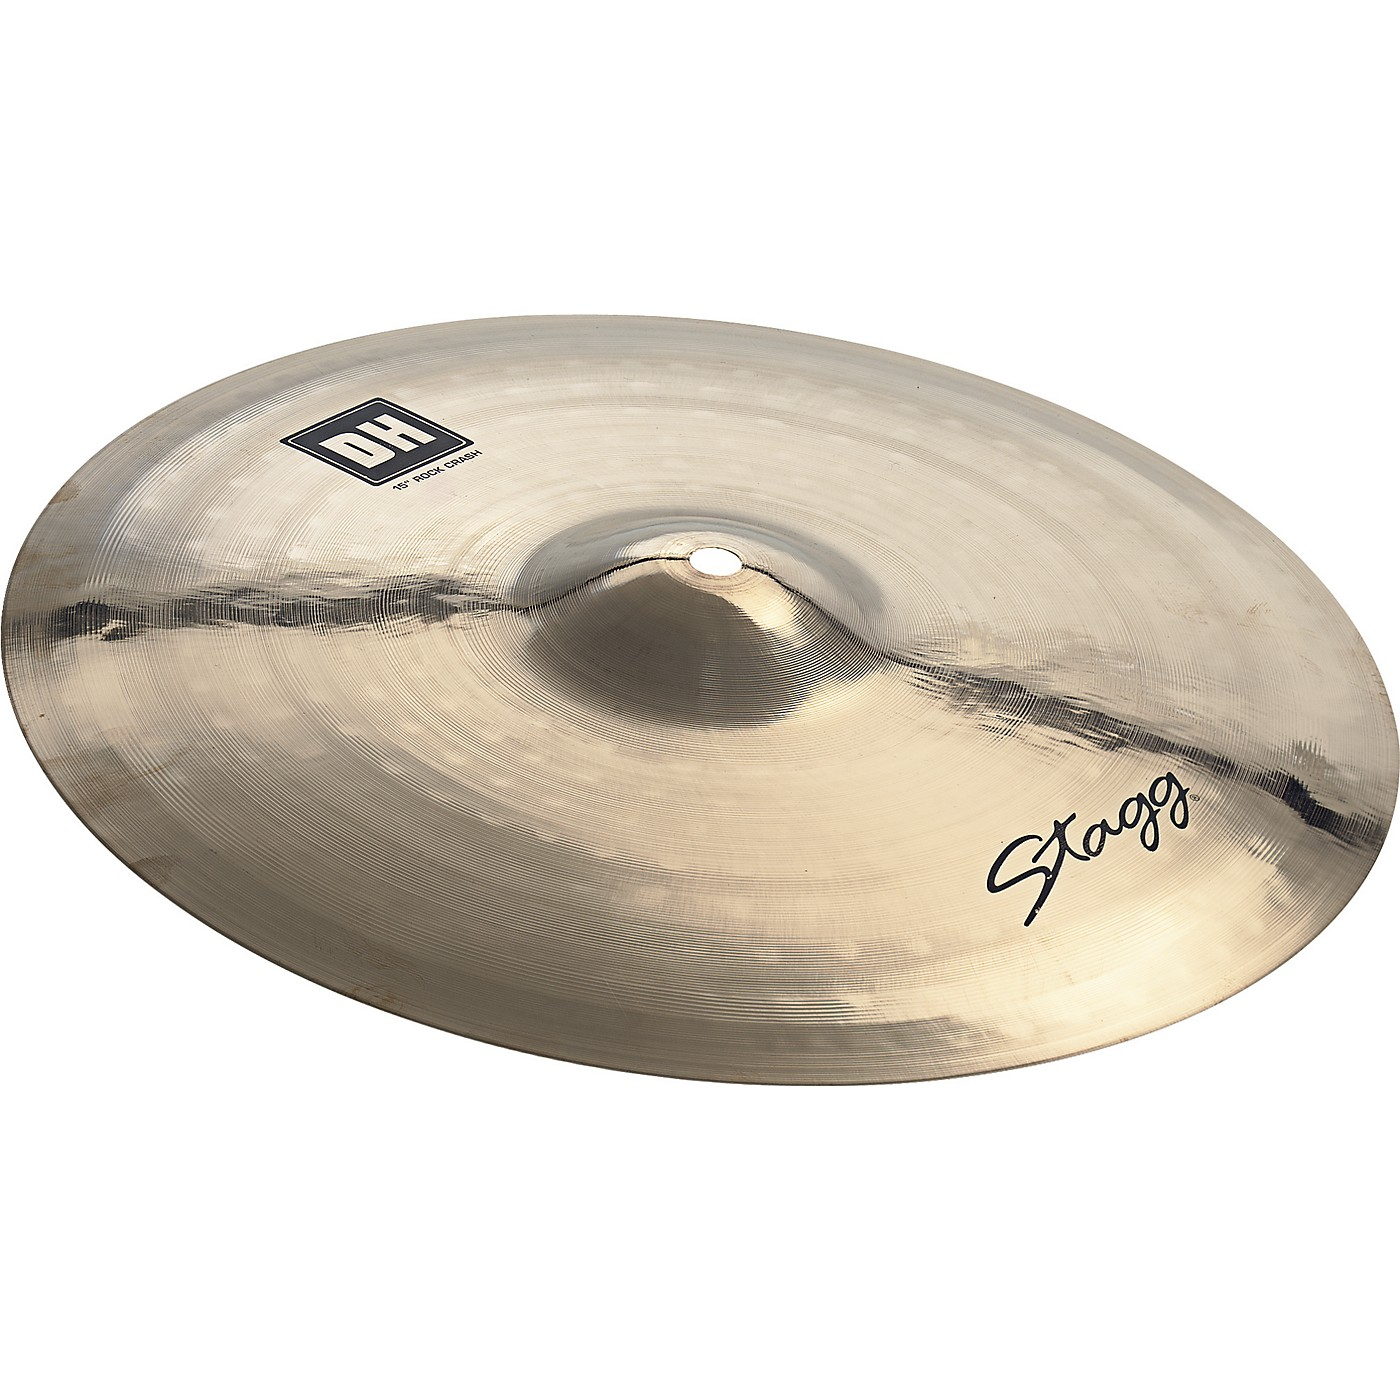 Stagg DH Dual-Hammered Brilliant Rock Crash Cymbal thumbnail